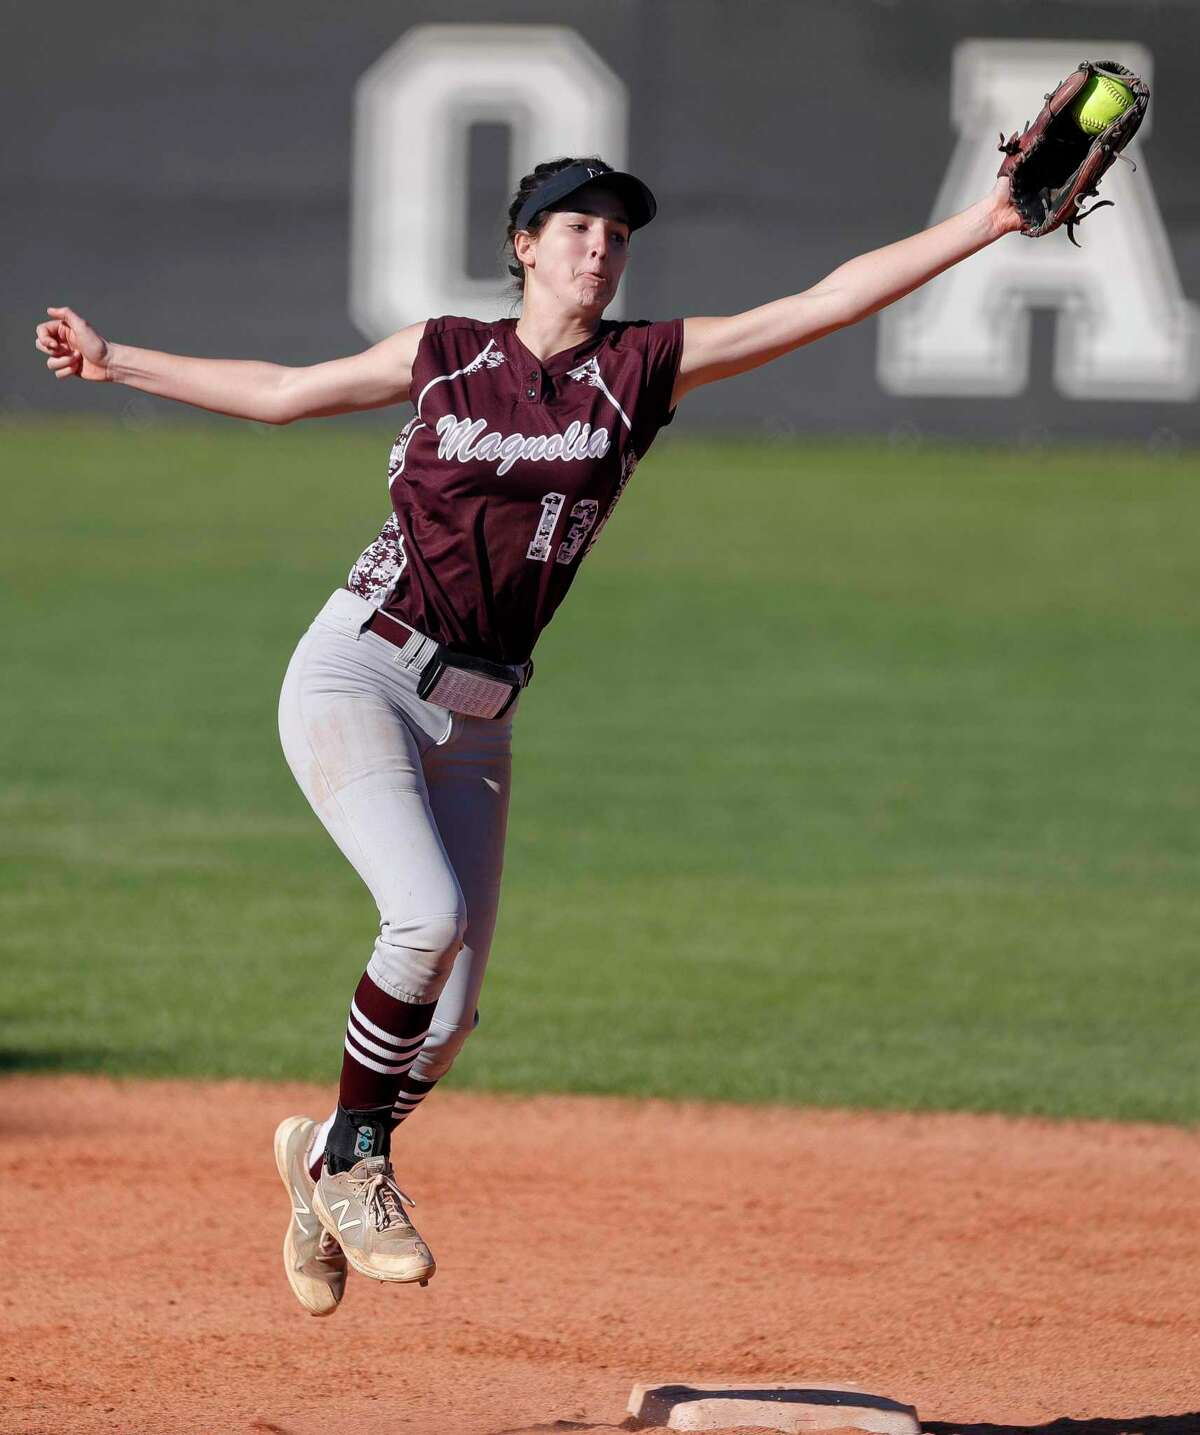 Magnolia shortstop Gabrielle Huetter (13) catches a high throw to second base during the third inning of a non-district high school softball game at Oak Ridge High School, Thursday, Feb. 27, 2020, in Oak Ridge.